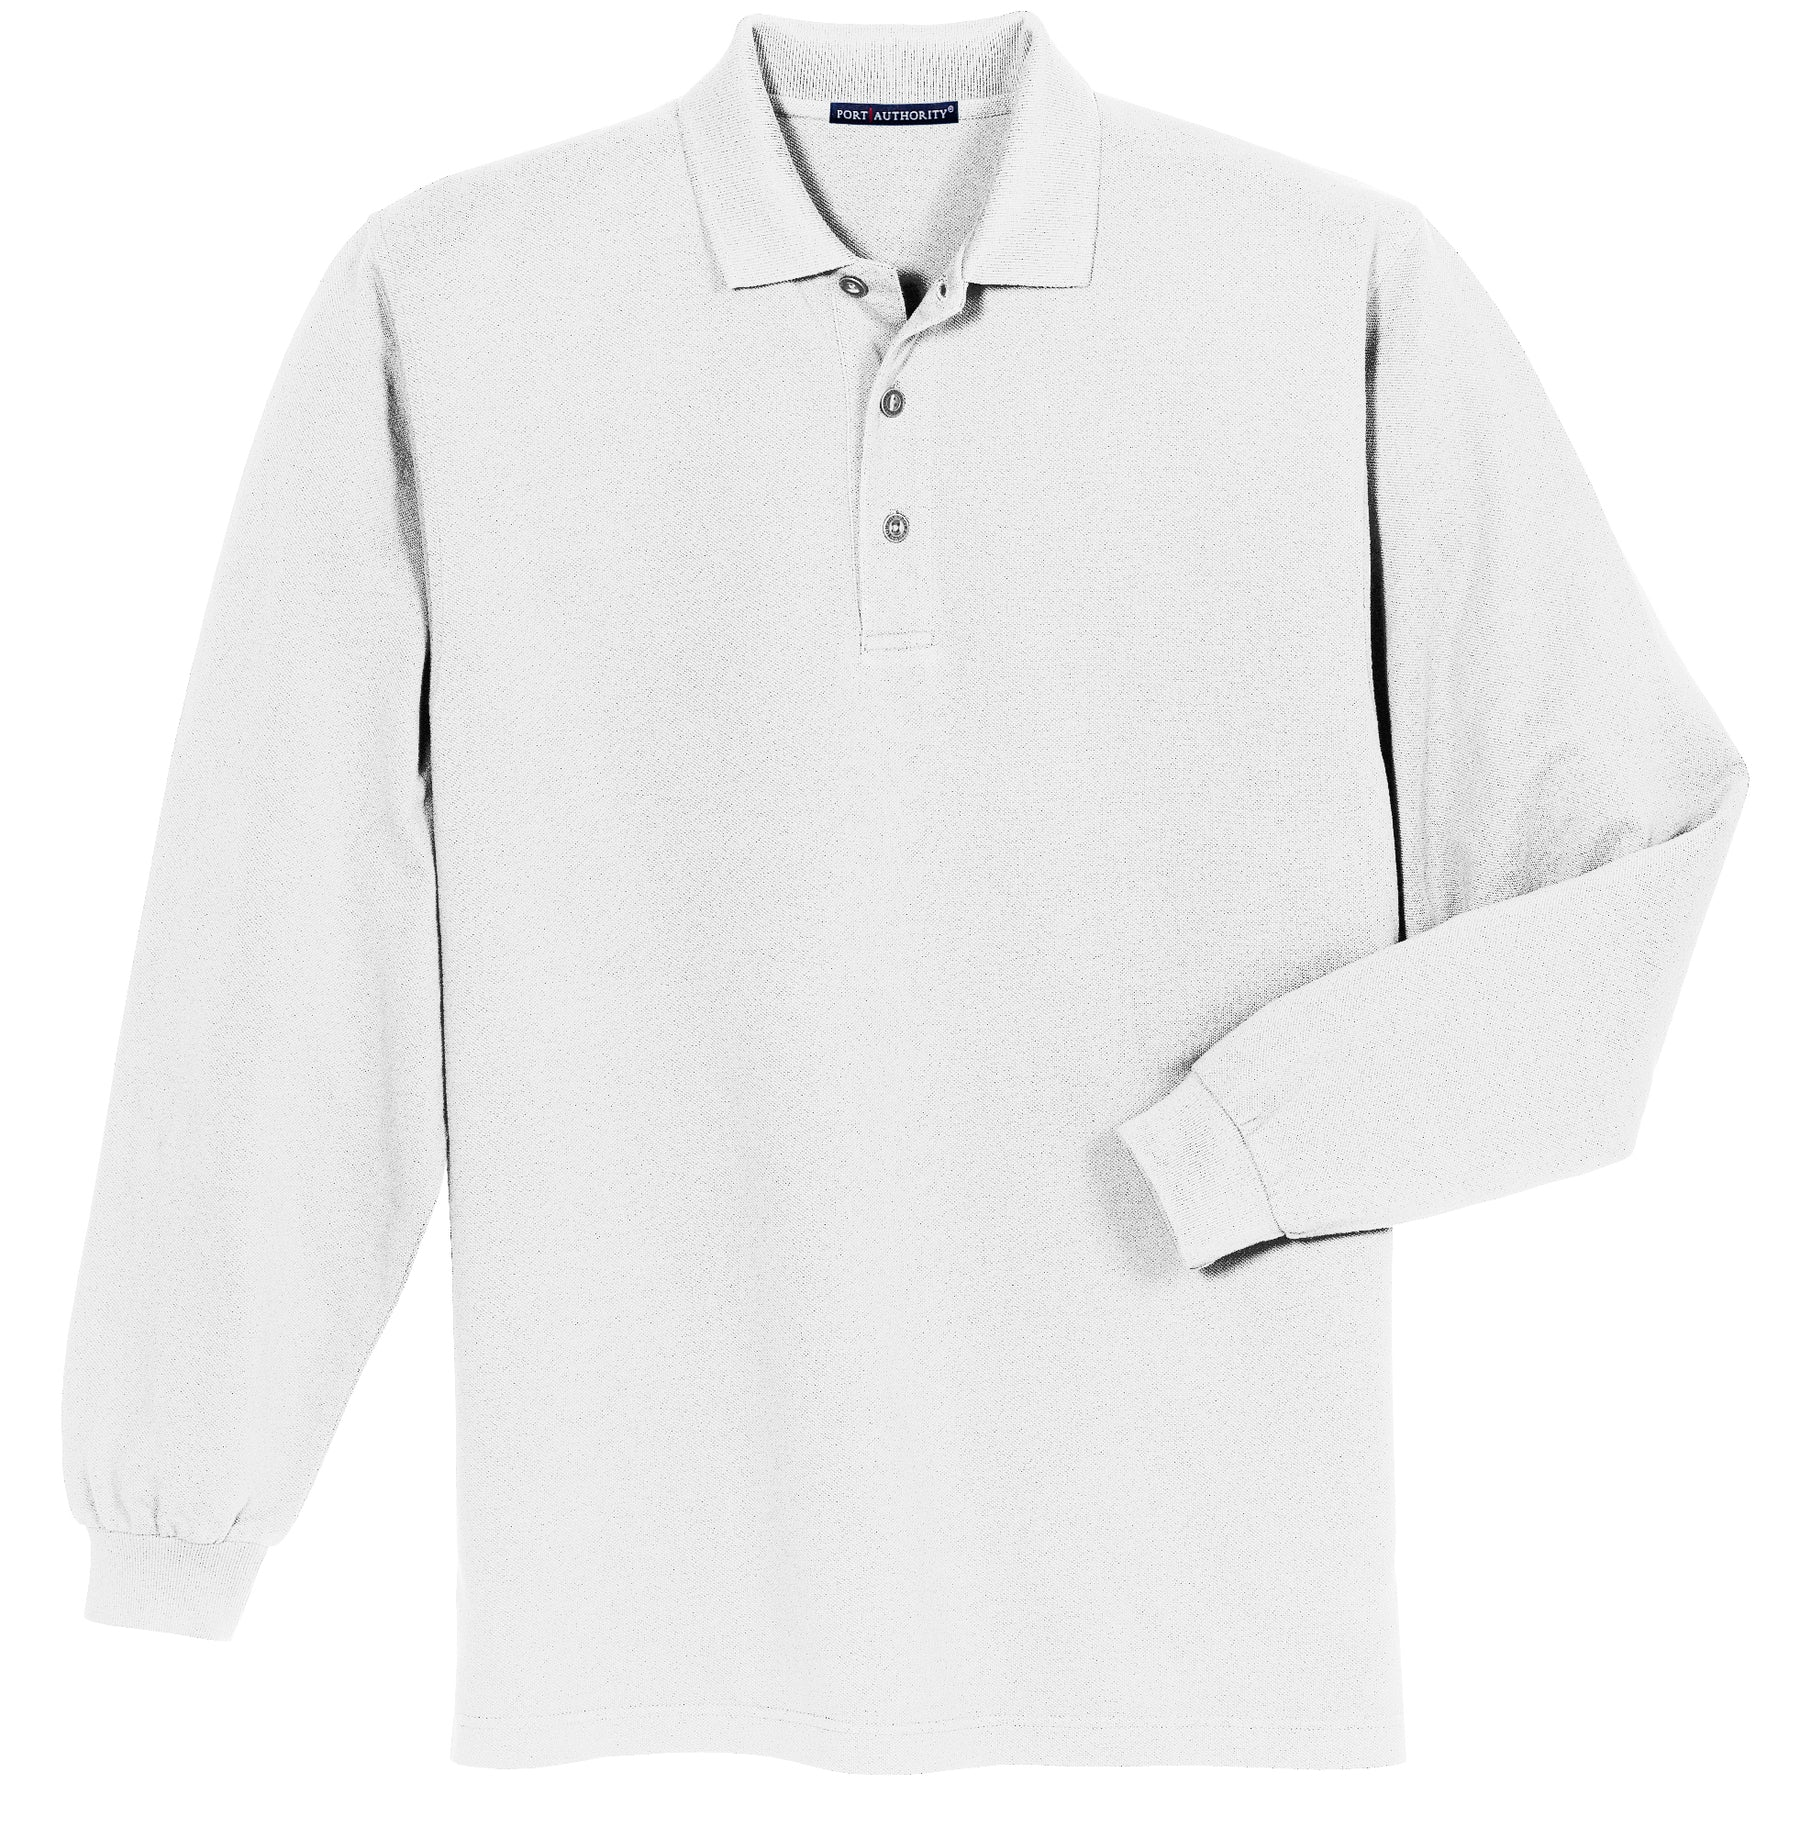 6aa4f03fef149 Men s Long Sleeve Heavyweight Cotton Pique Polo – The Stitching Loft